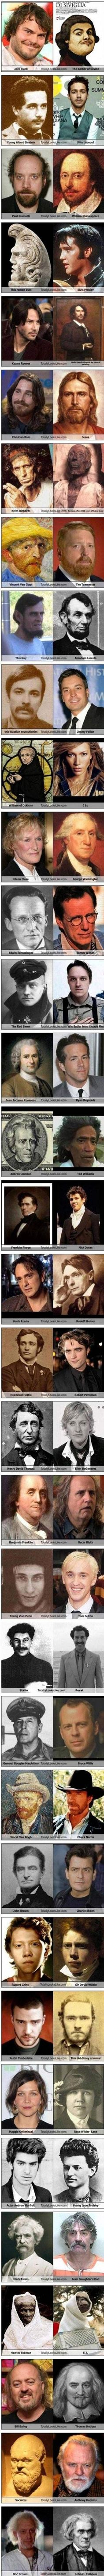 funny actors time travelers old paintings